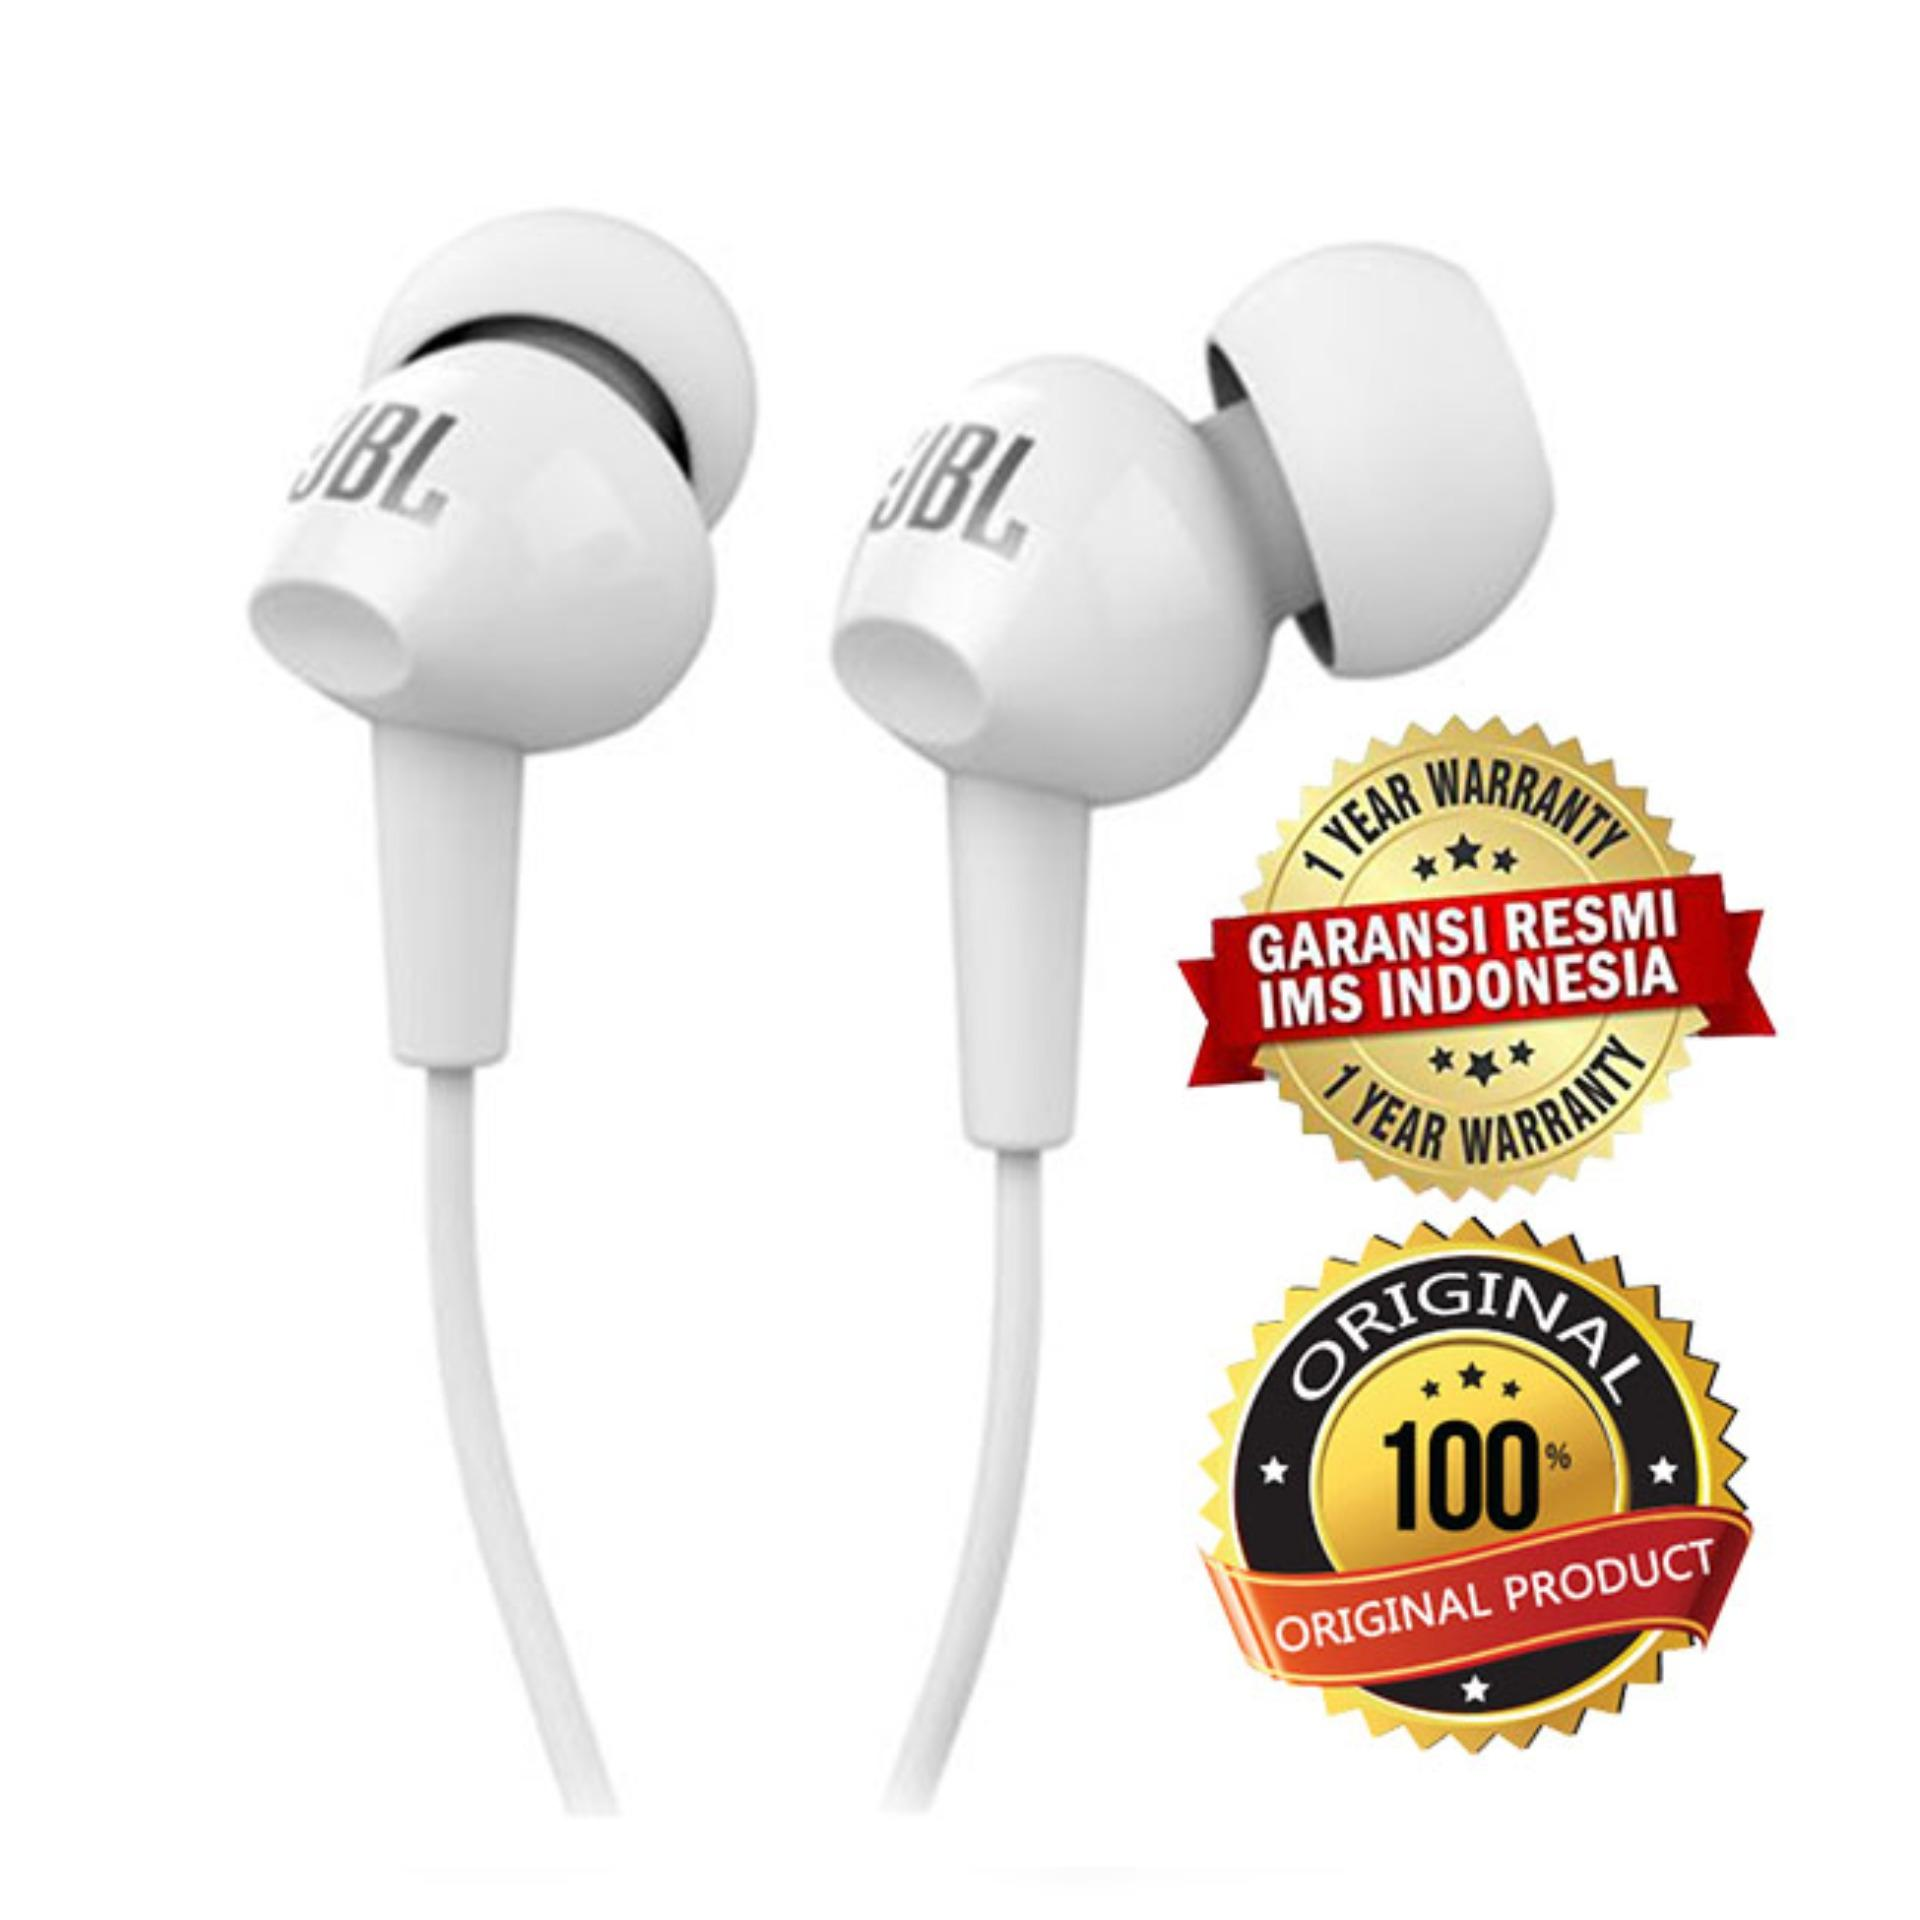 Headphone Headset Jbl Terbaru On Ear Wireless Everest 300 Putih C100si In Headphones With Mic Compatible Withandroid Ios